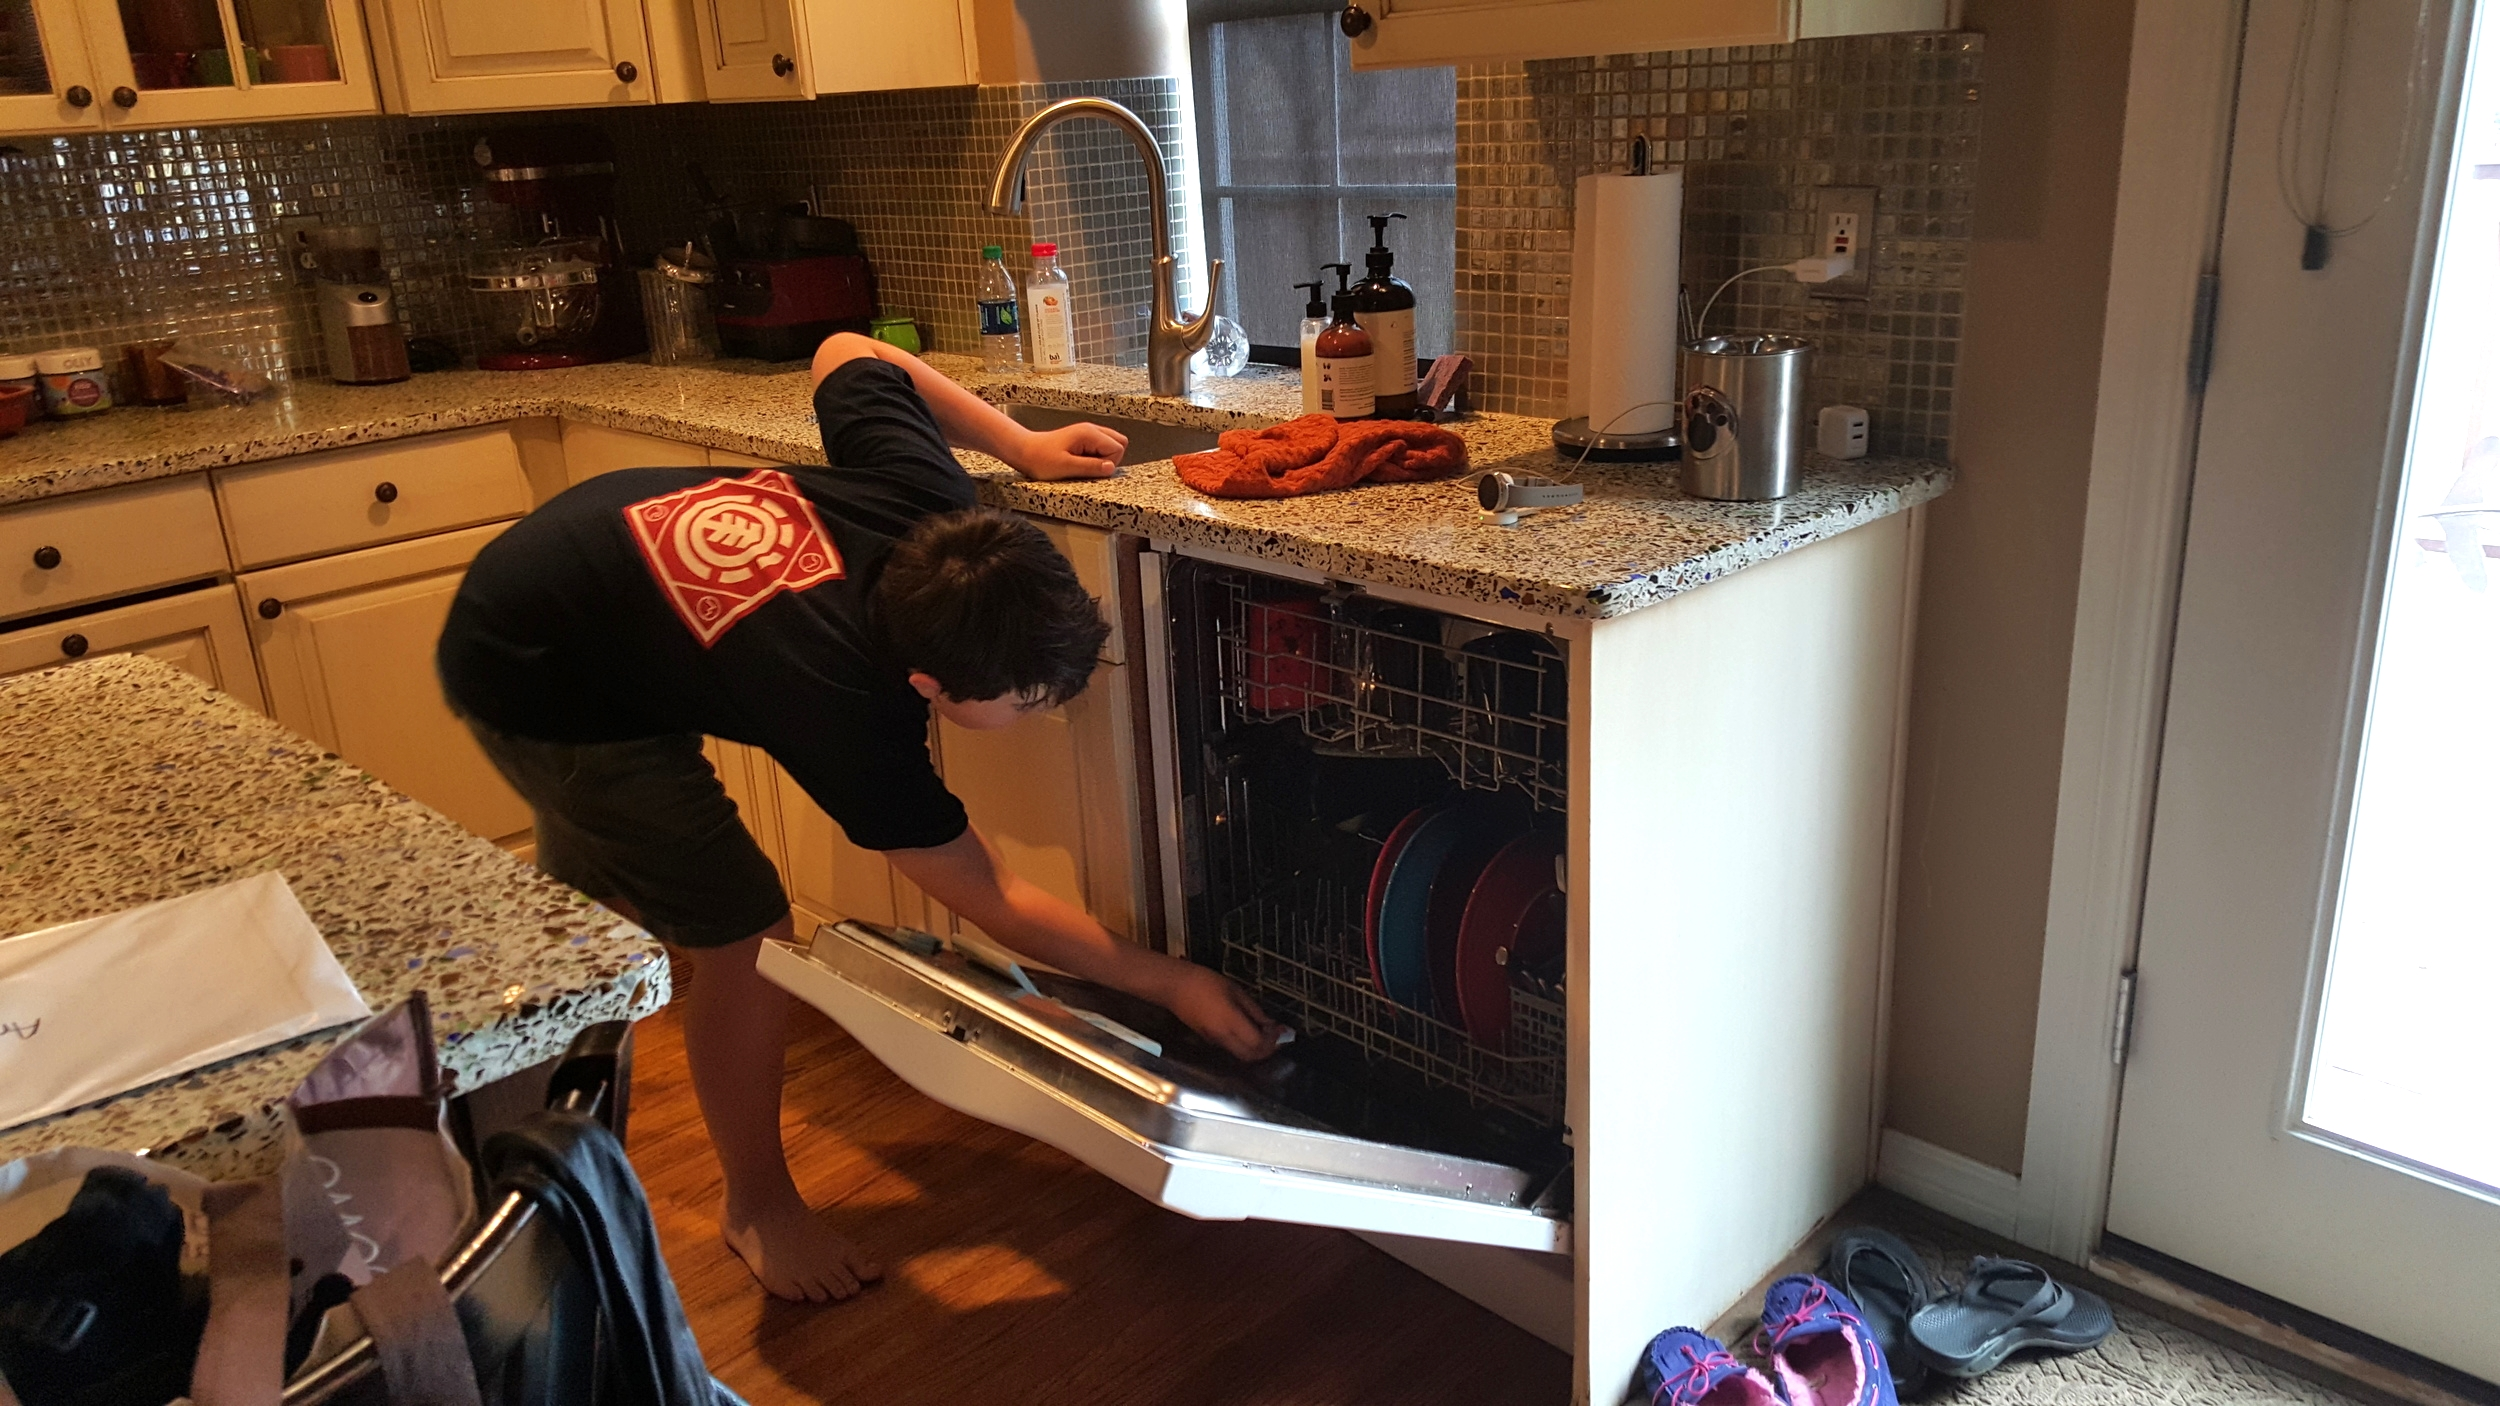 The boys pitched in on keeping the dishes in check during my two-week break from cleaning house!